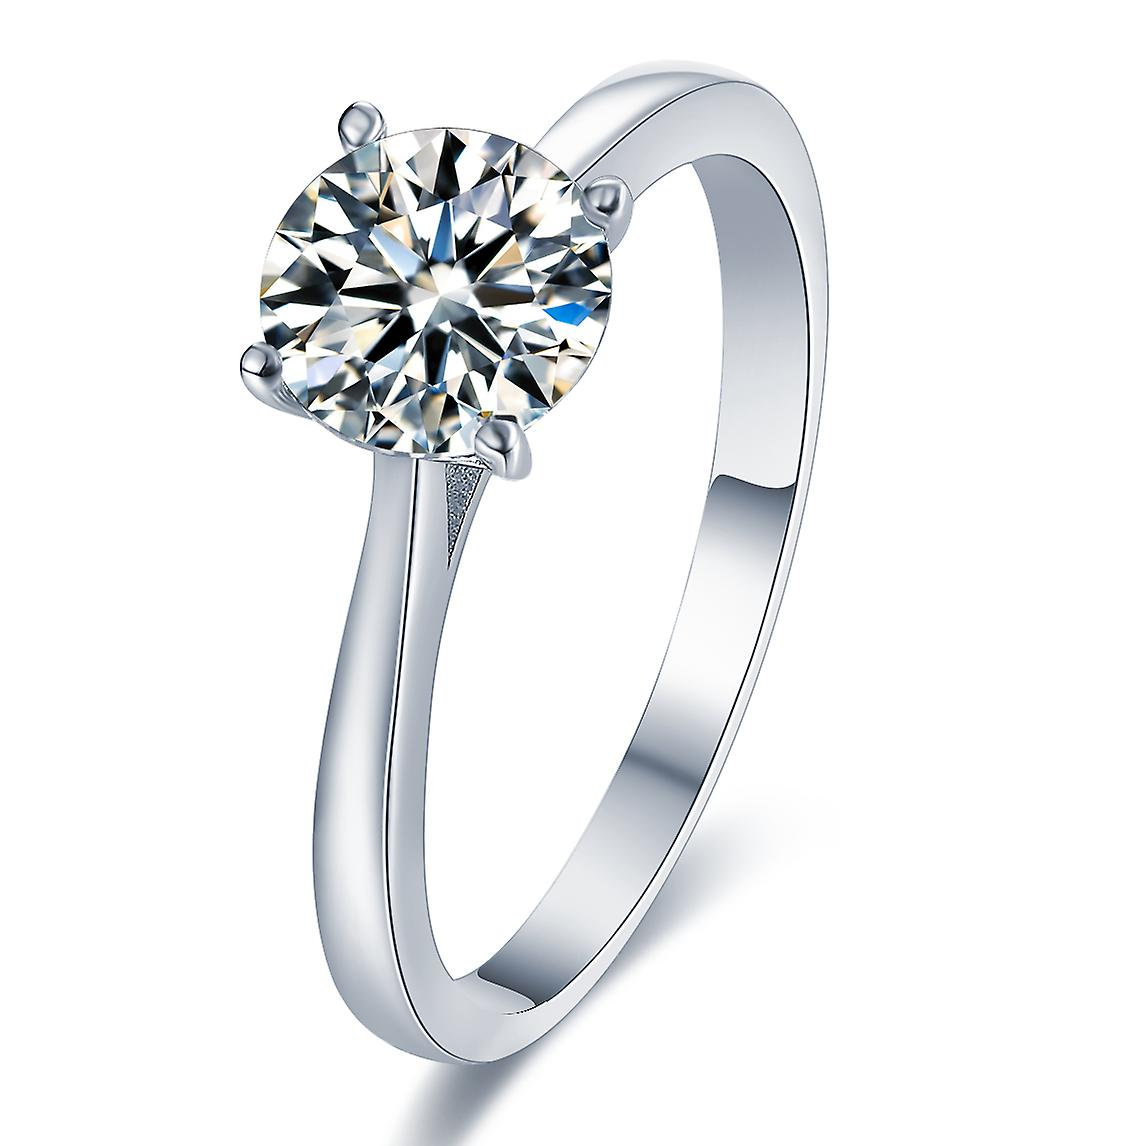 925 Sterling Silver 4-claws Round Cut Solitaire Engagement Ring